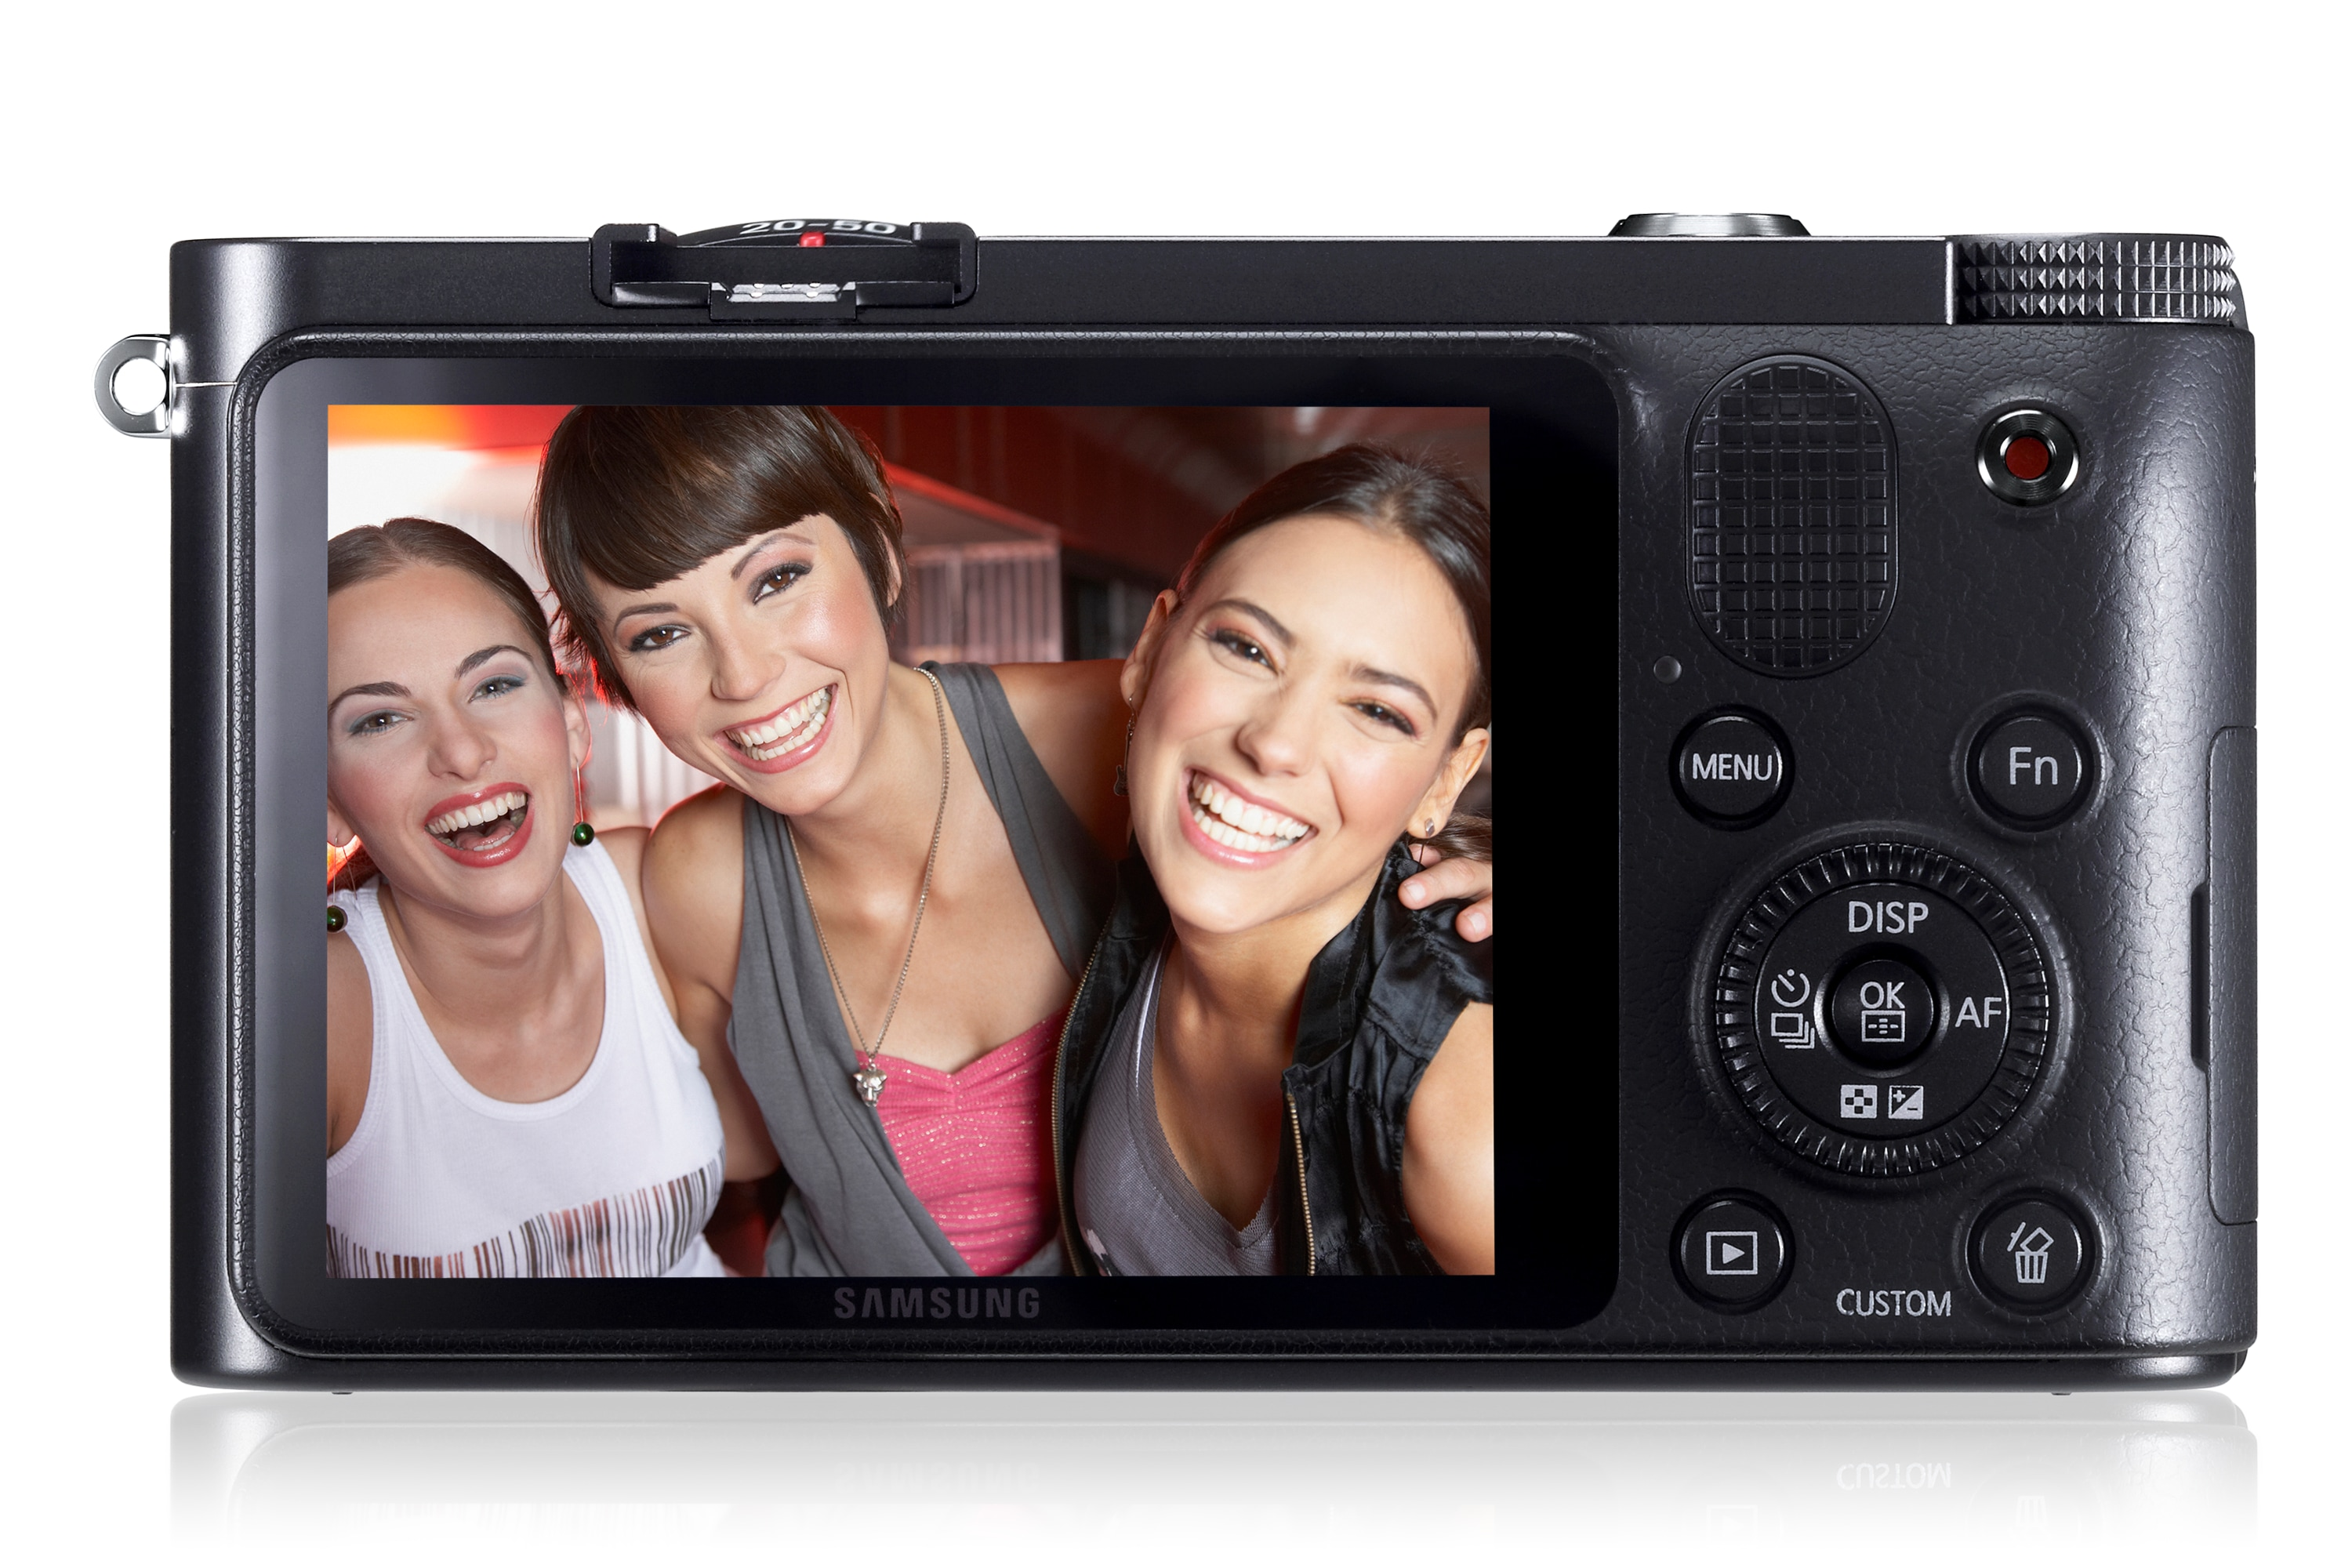 NX1000 20.3MP NXSMART Digital Camera